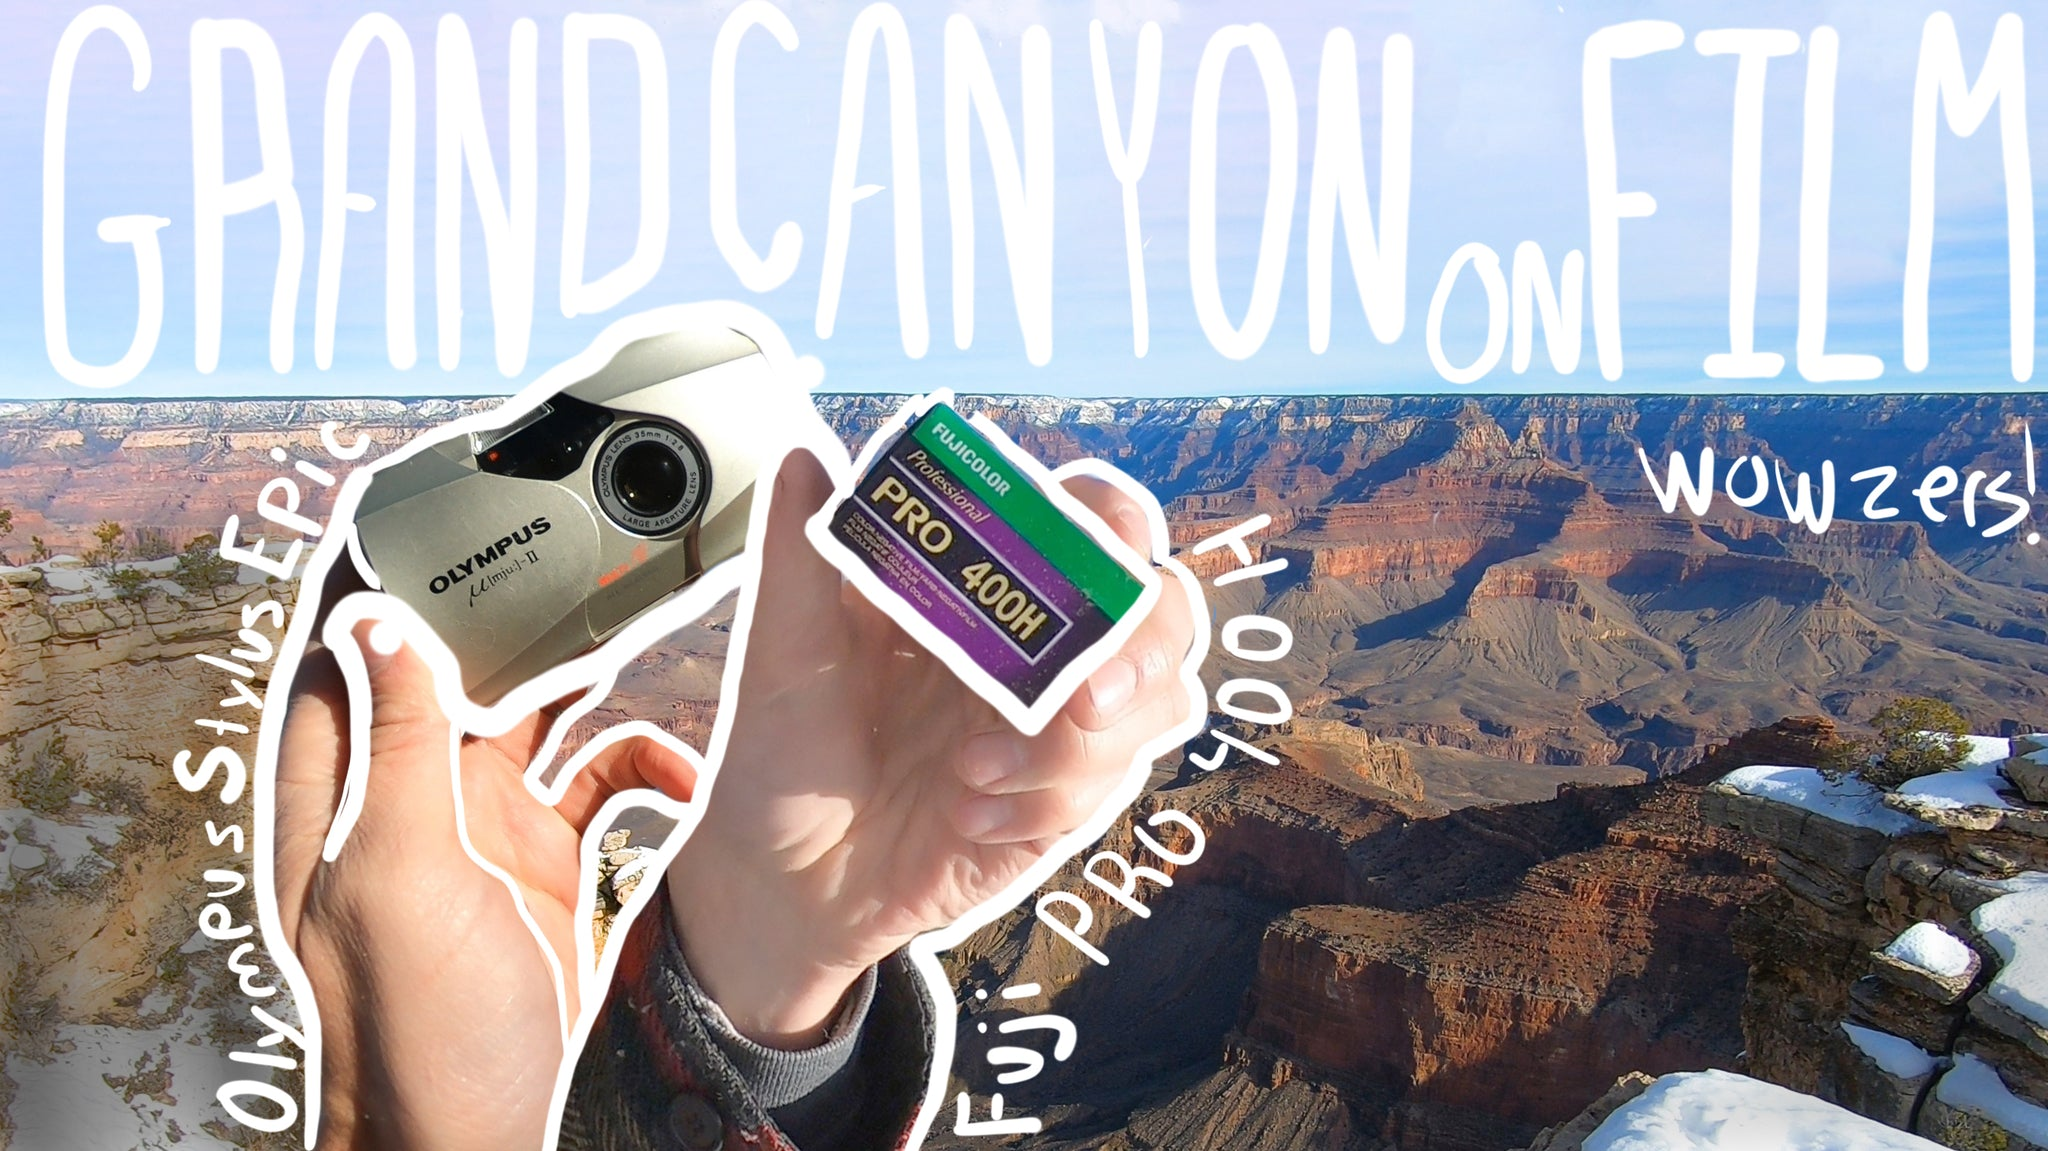 Video: Grand Canyon//Olympus Stylus Epic MJU ii// Fuji Pro 400h